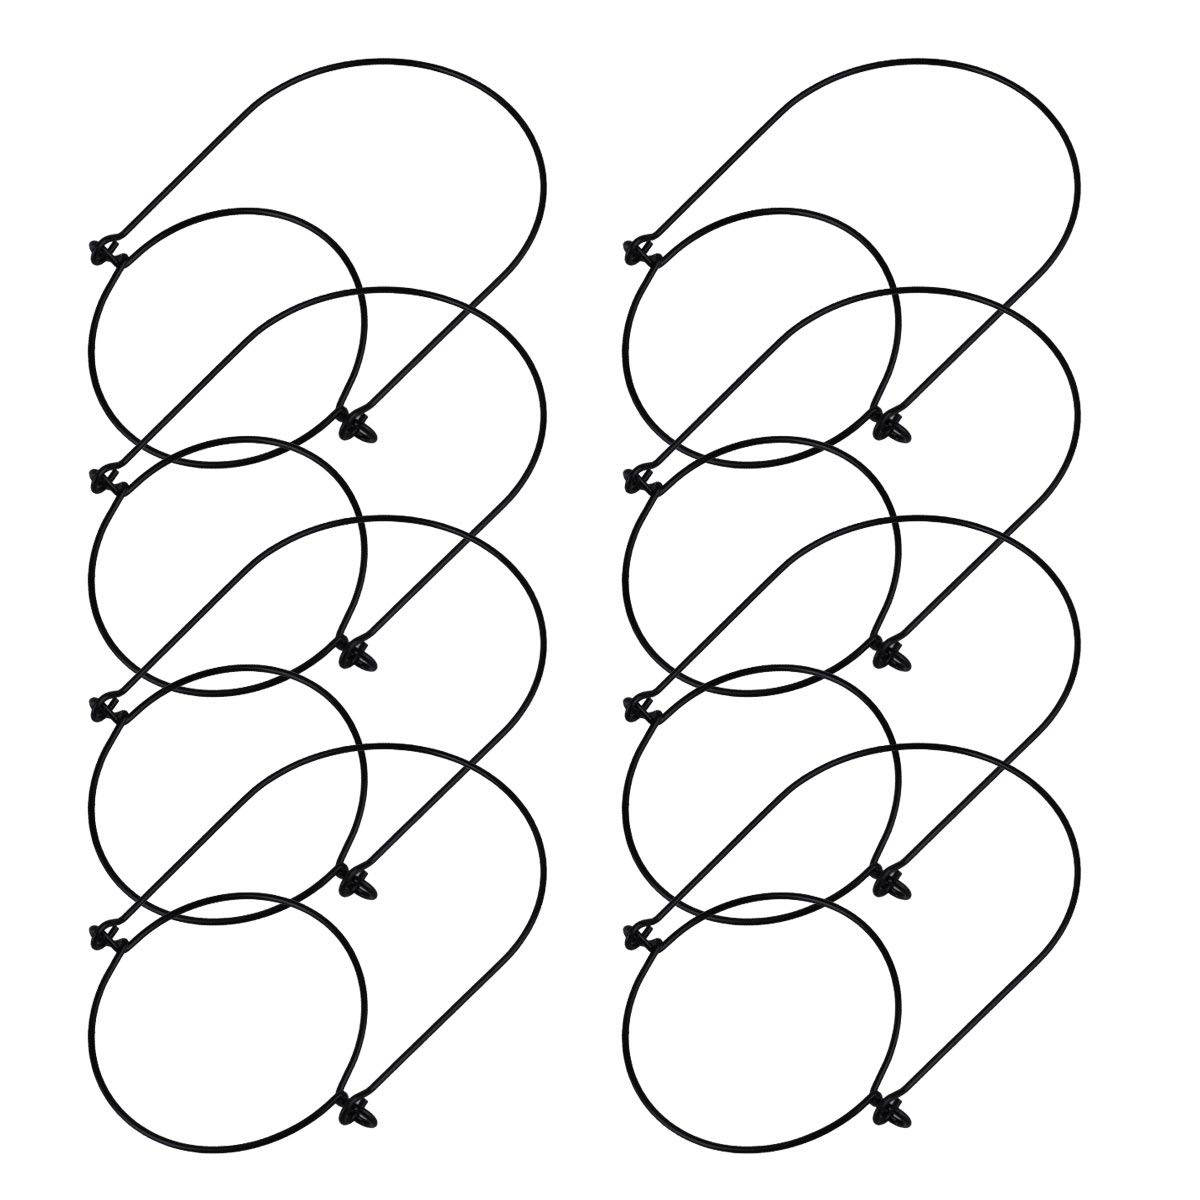 FEESHOW 6/8pcs Stainless Steel Wire Handles for Mason Jar, Ball Pint Jar, Canning Jars, Mason Jar Hangers and Hooks for Regular Mouth 8PCS Black Stainless Steel One Size